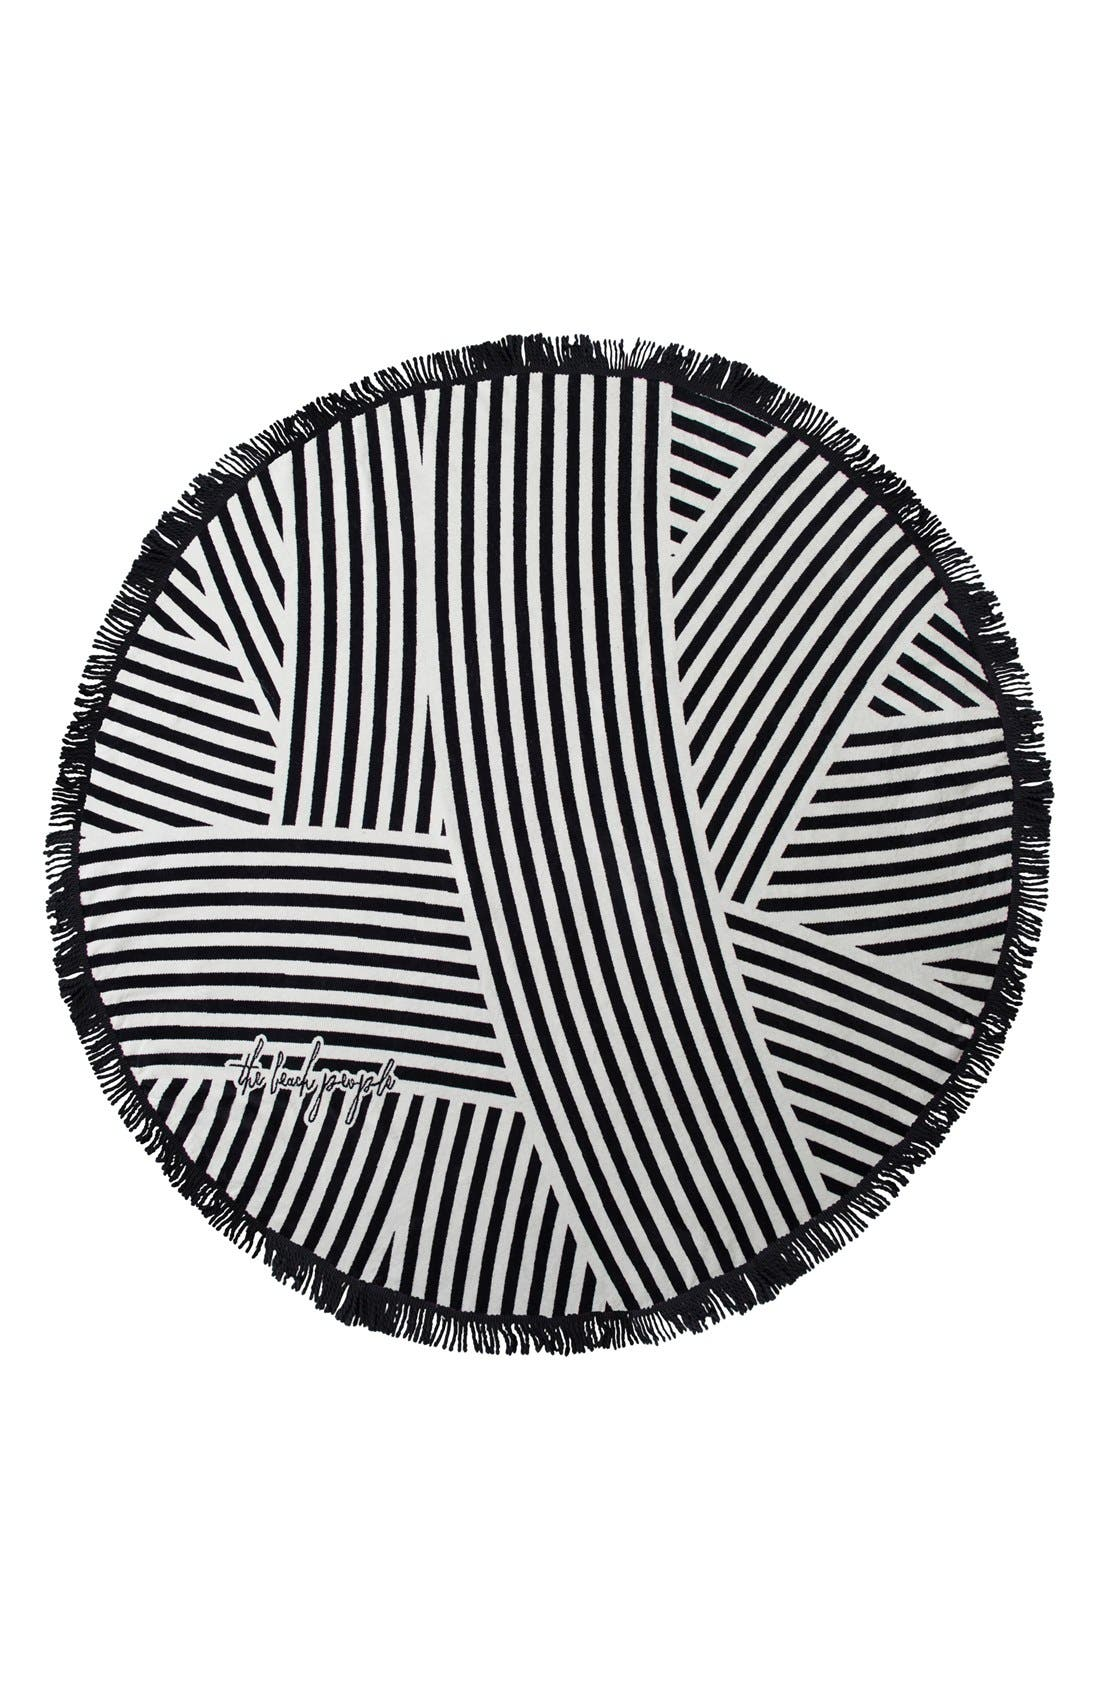 The Beach People 'Paloma' Round Beach Towel